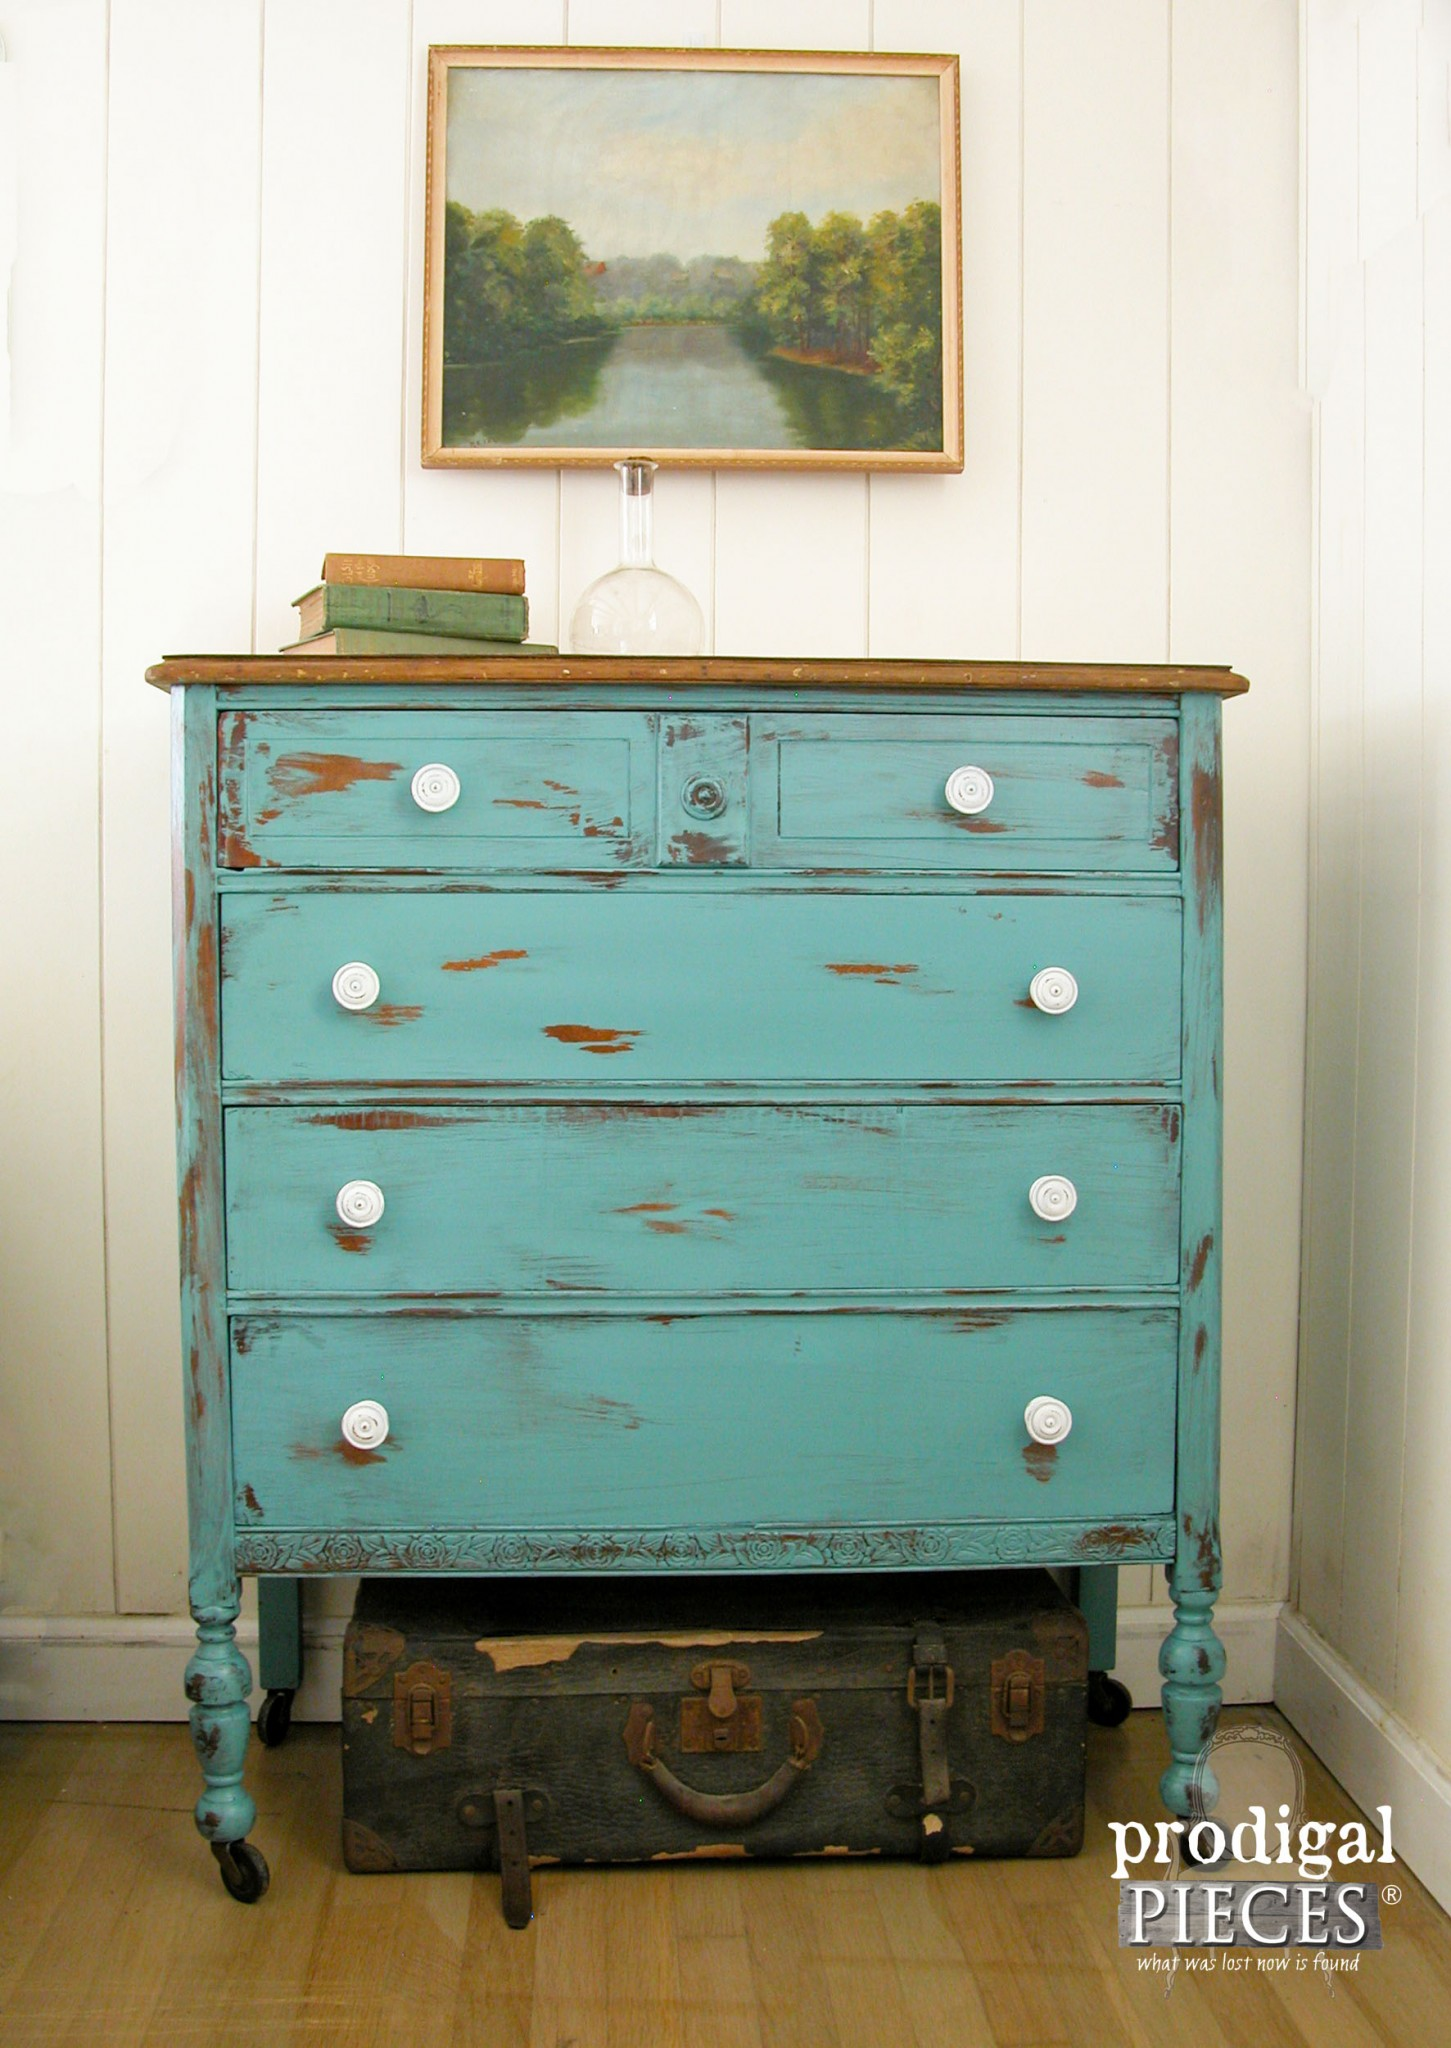 Get The Look Of Distressed Paint With Petroleum Jelly | Aqua Teal Chest Of  Drawers By